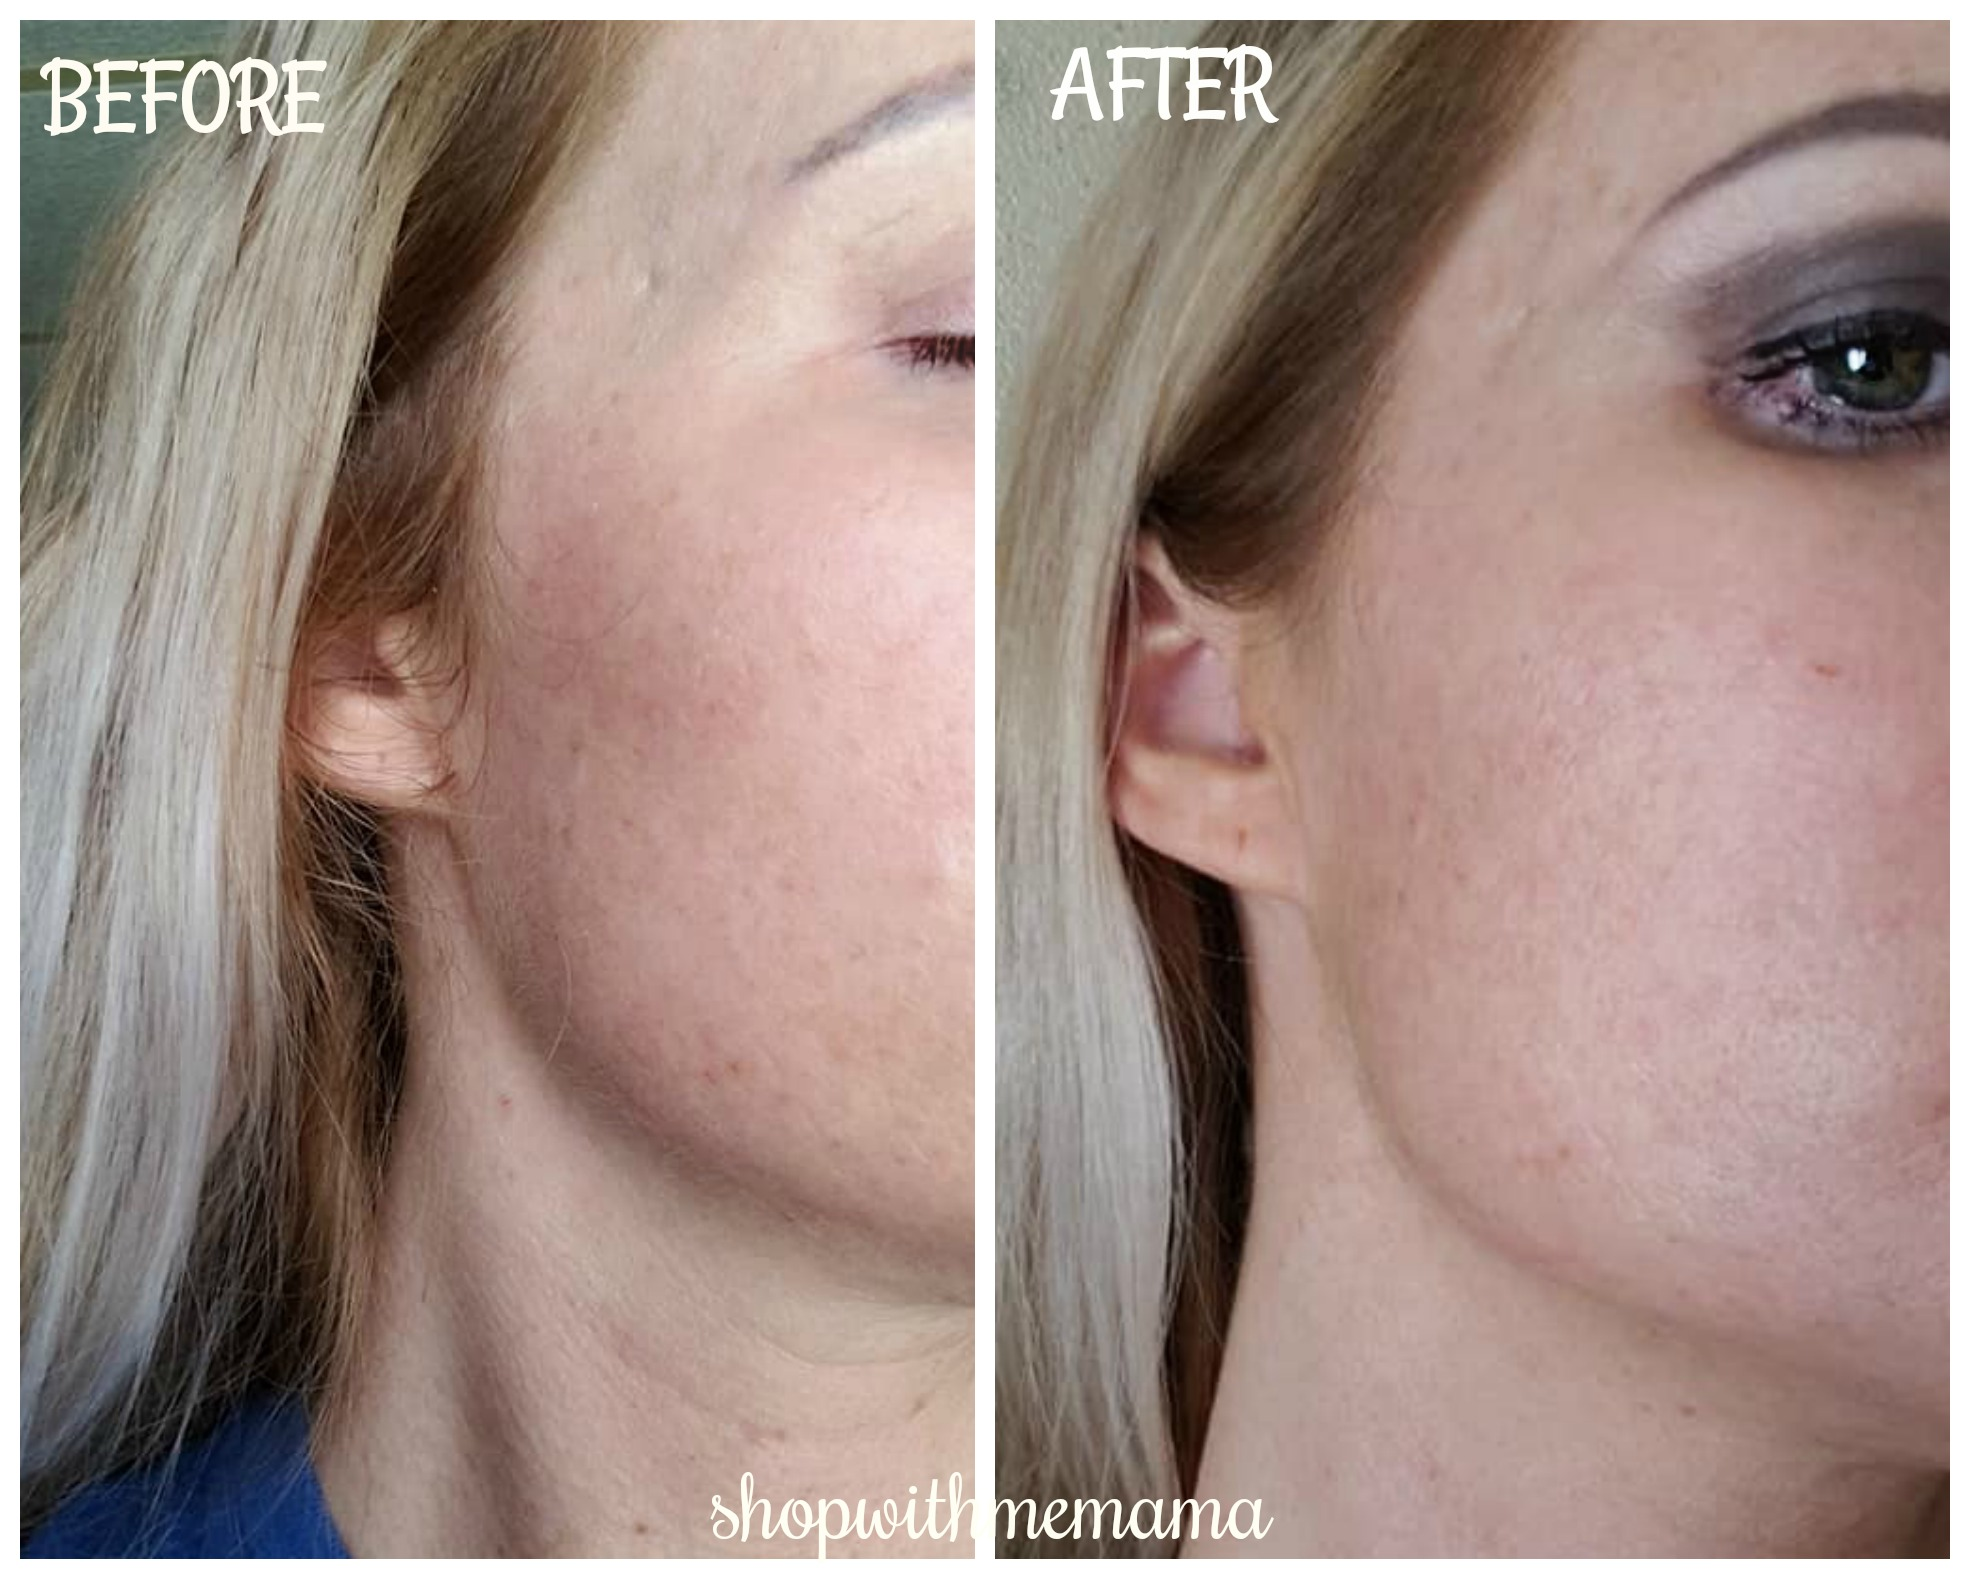 Before and after pictures of skin